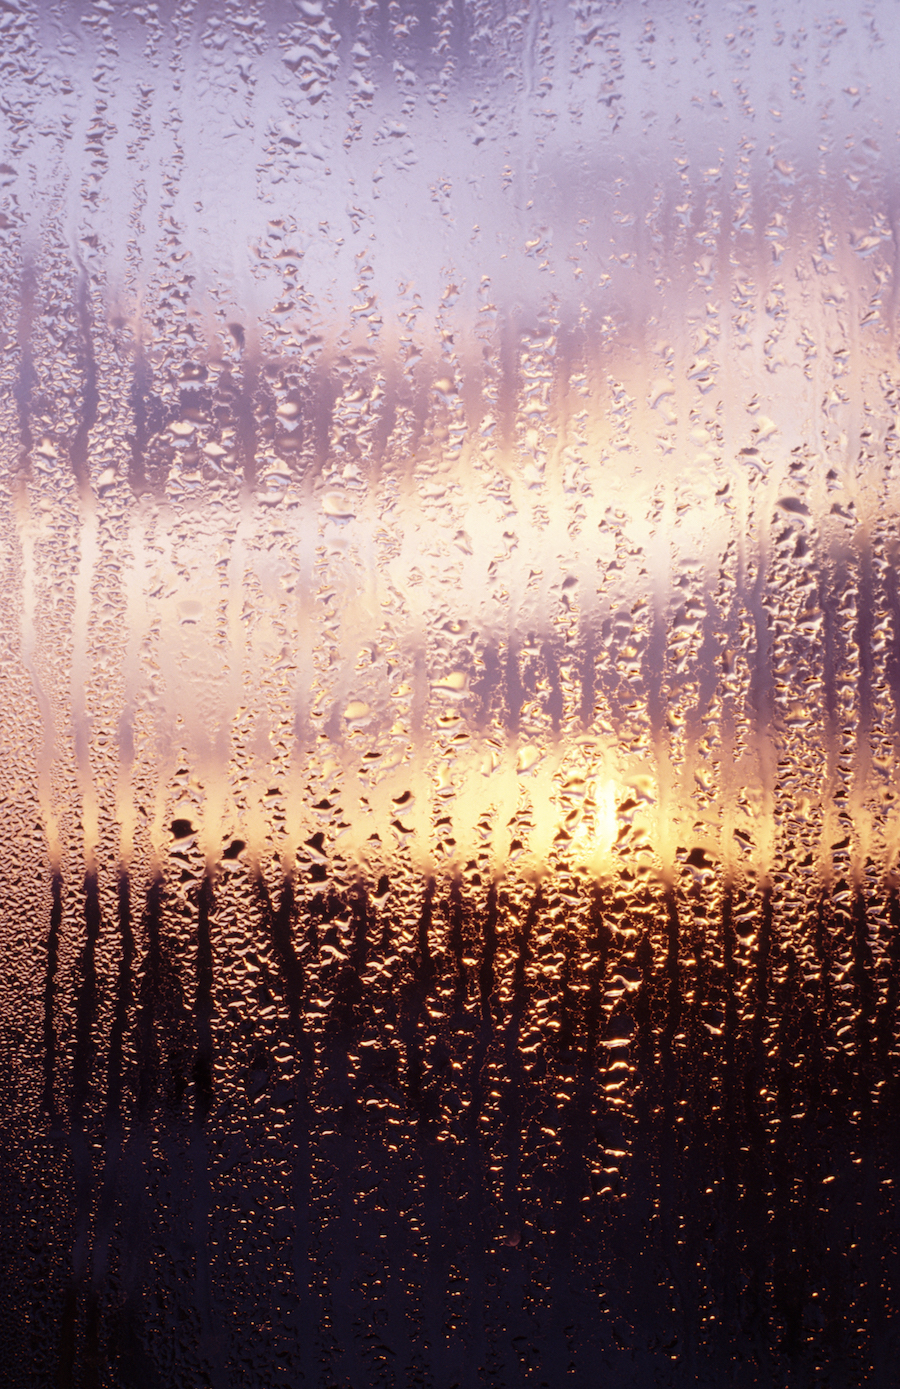 rain water on window